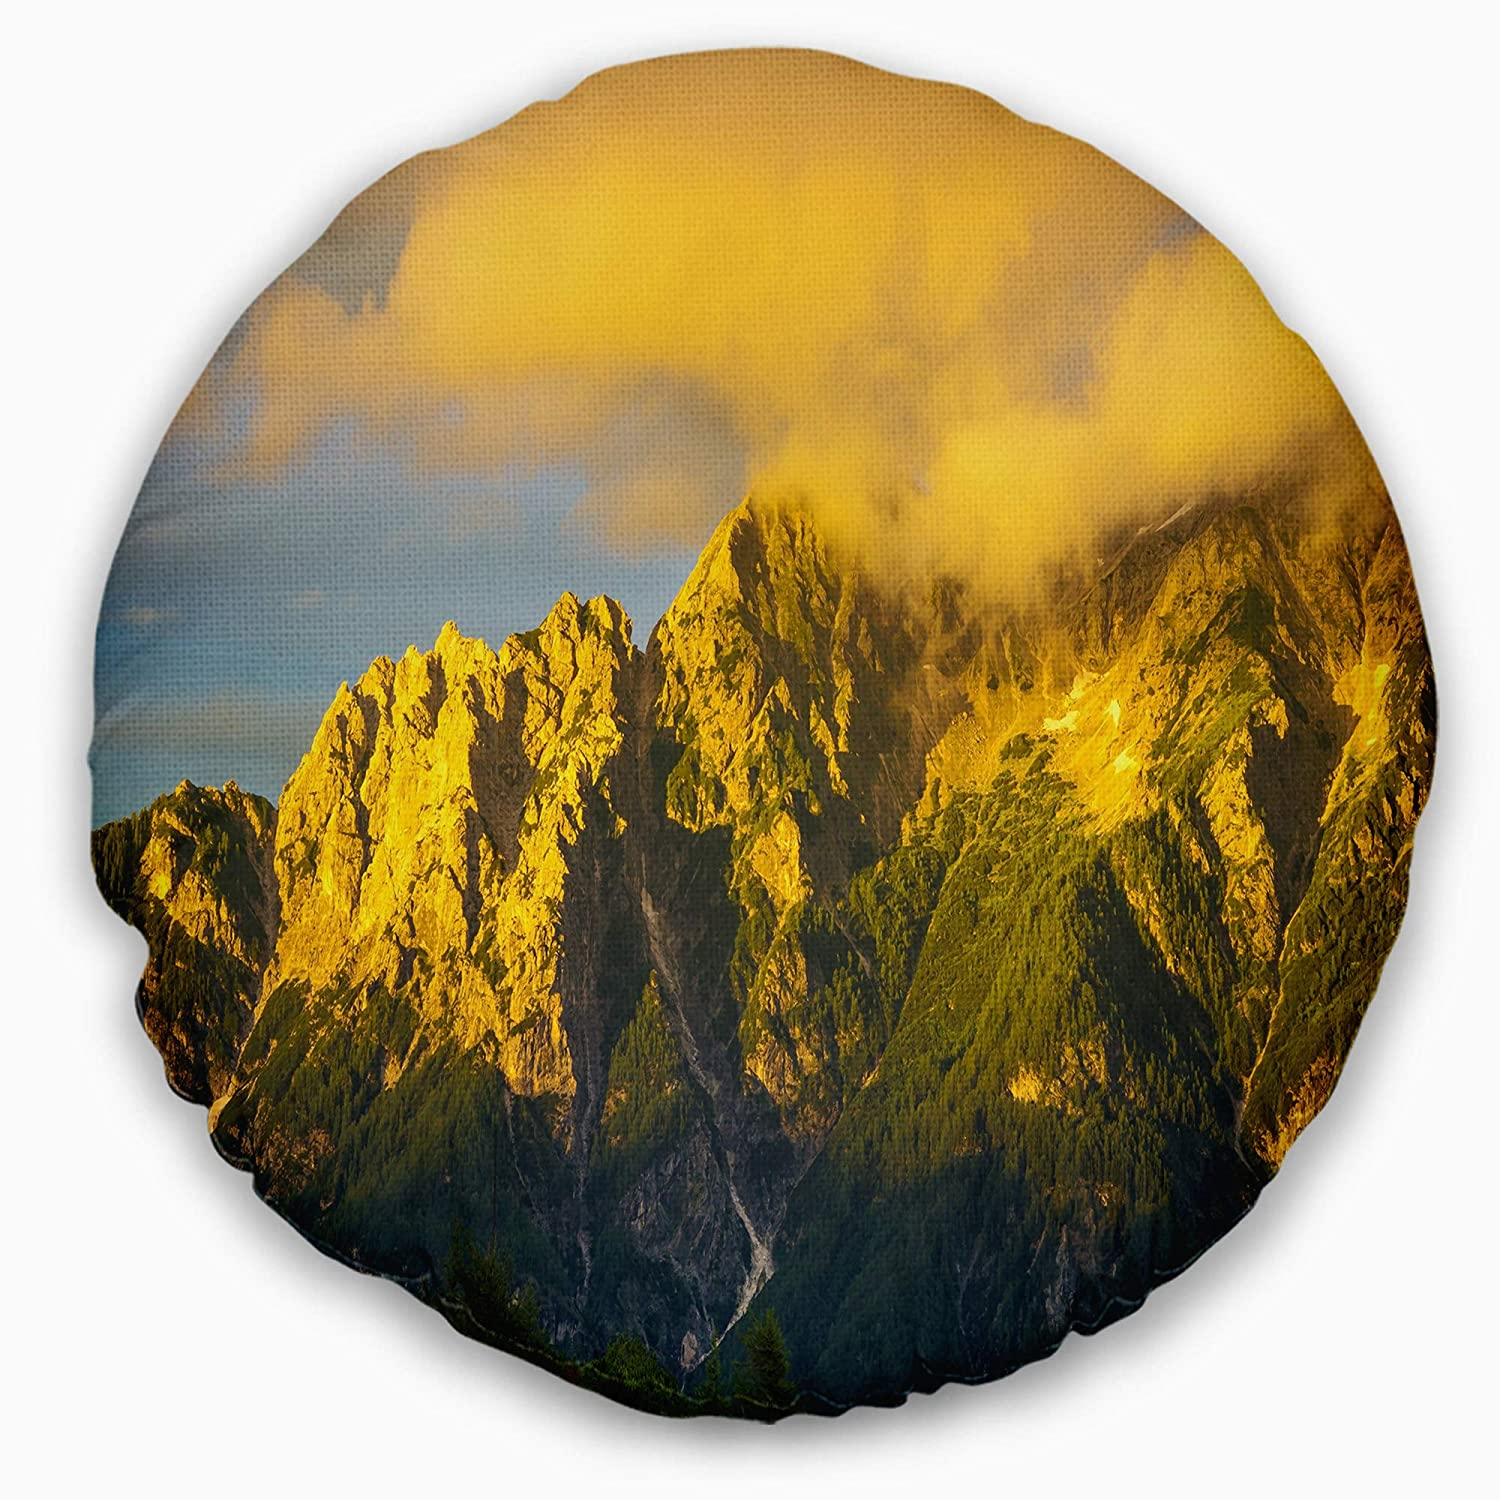 Insert Side Designart CU13116-20-20-C Beautiful Green Mountains Panorama Landscape Printed Round Cushion Cover for Living Room Sofa Throw Pillow 20